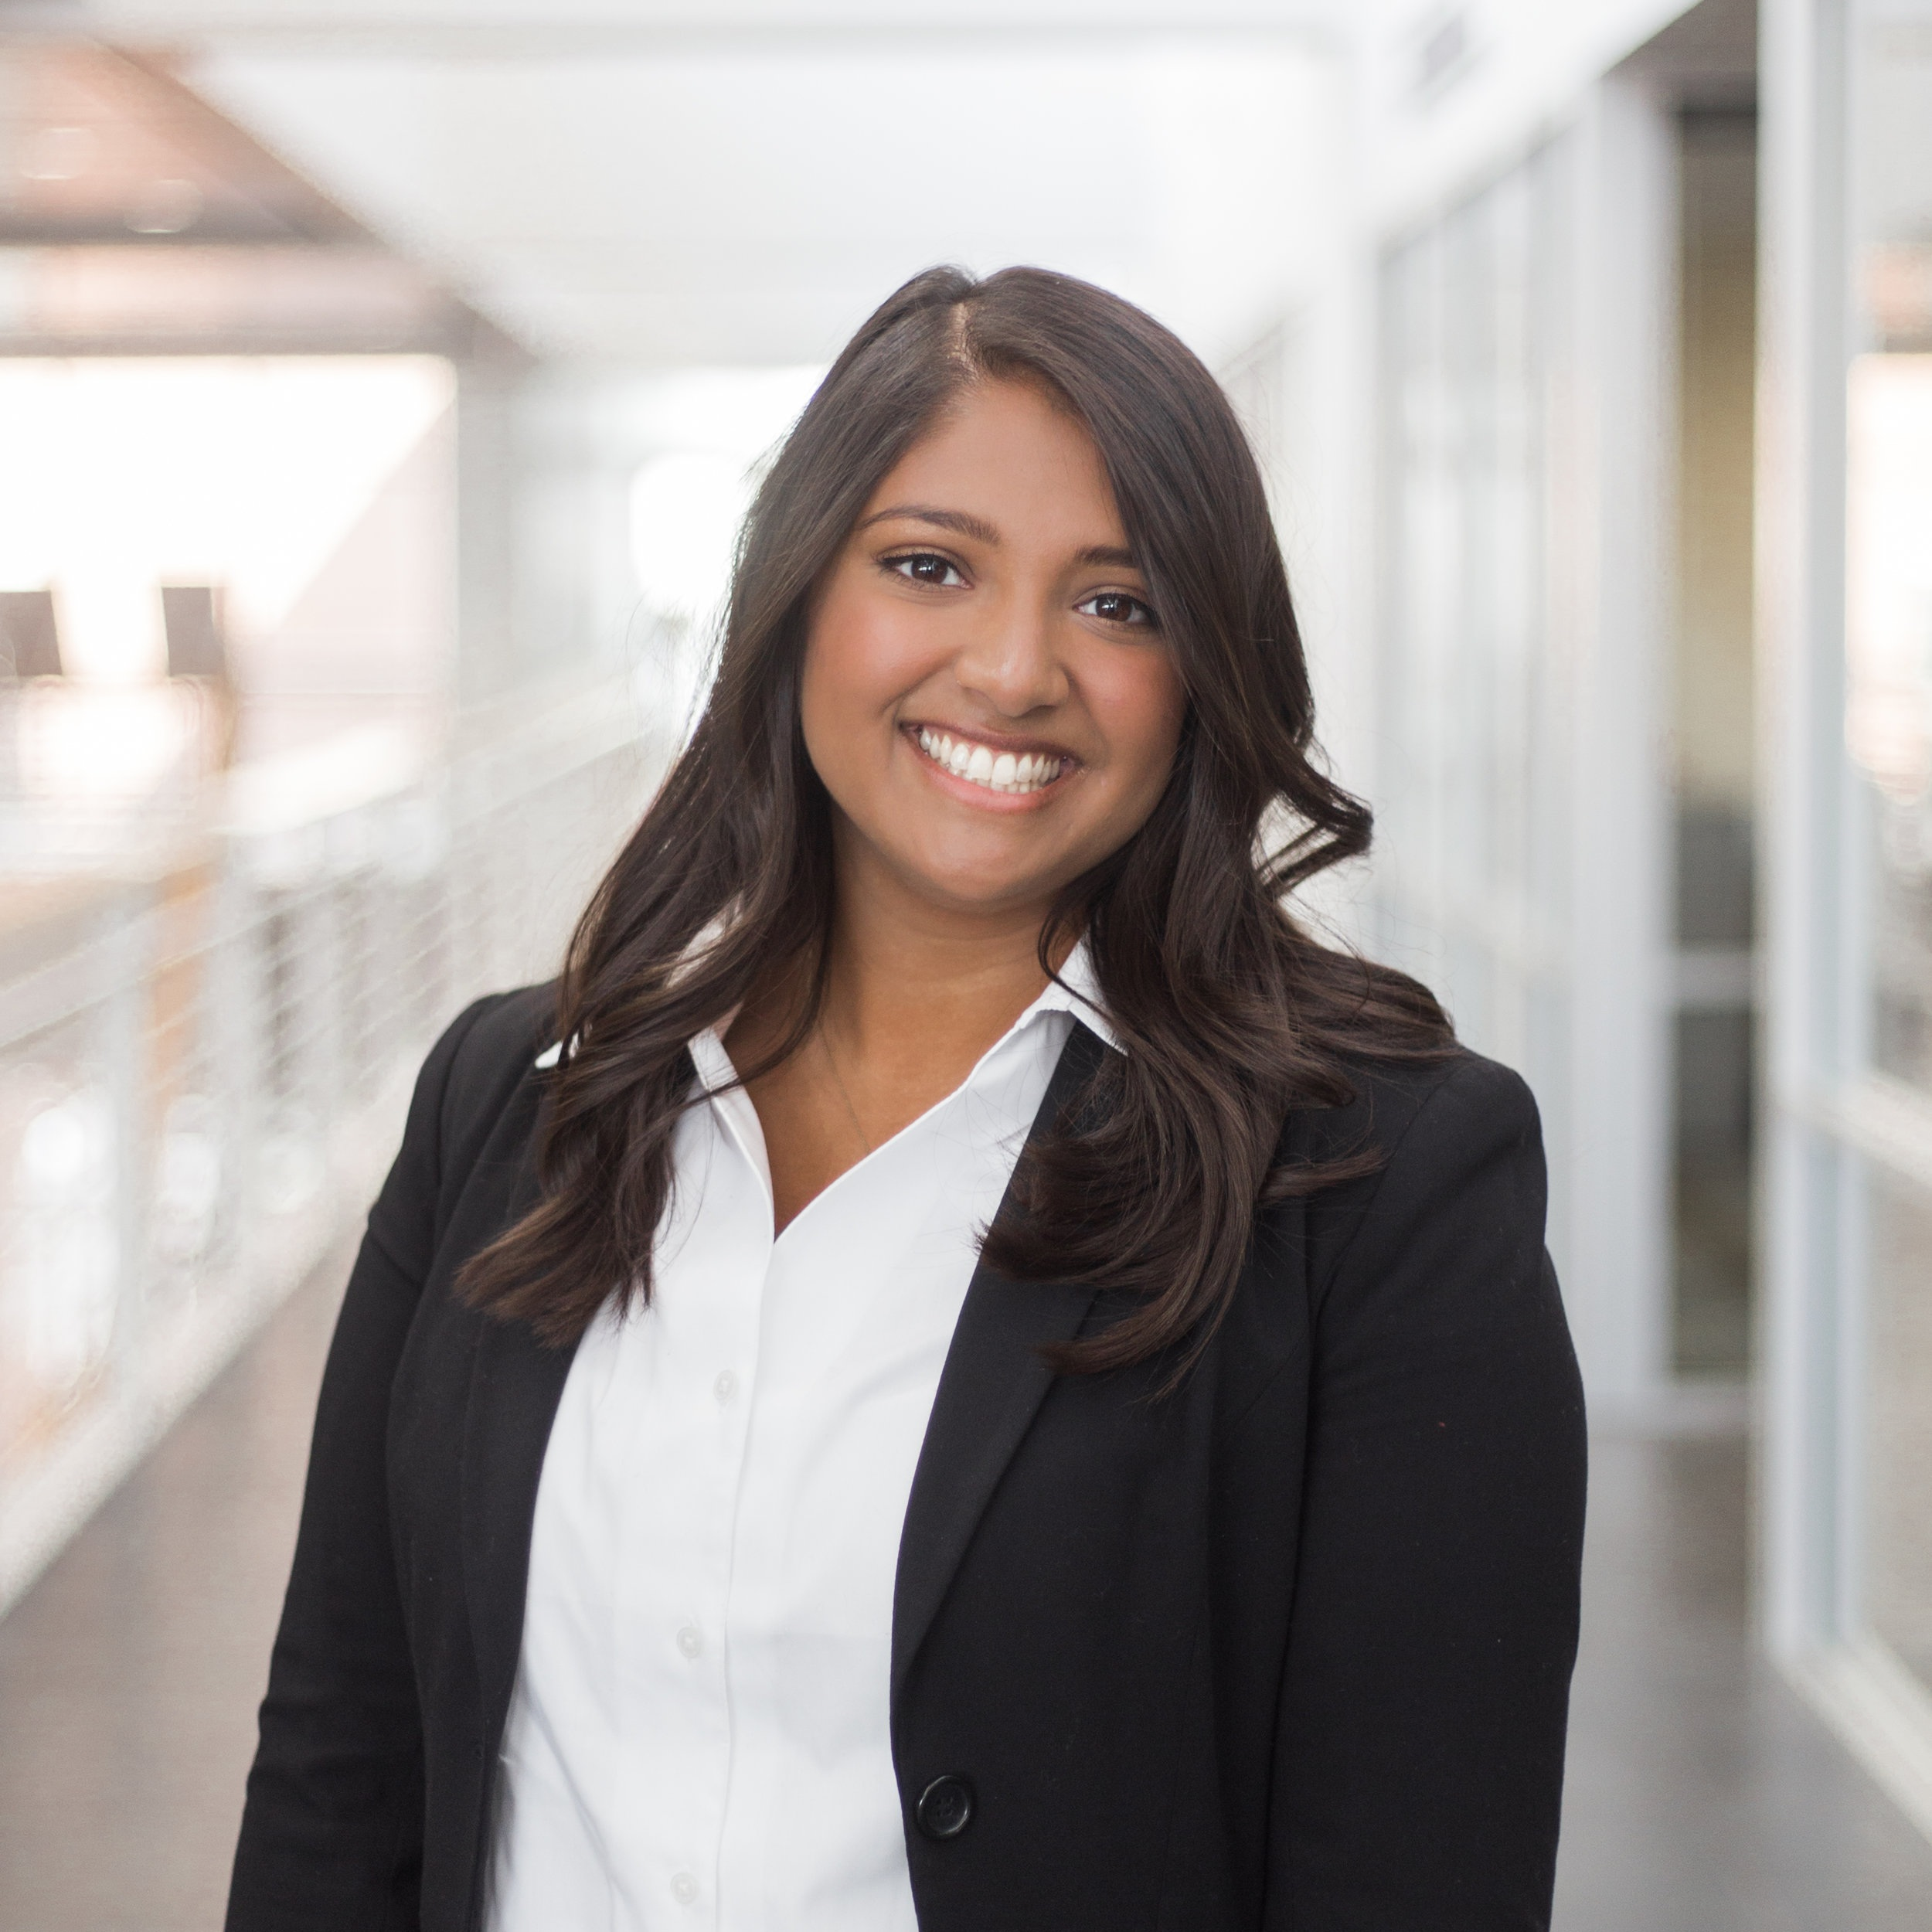 Aekta Mouli - Managing PartnerBSB '20, International Business, Management Information Systems, and Marketing